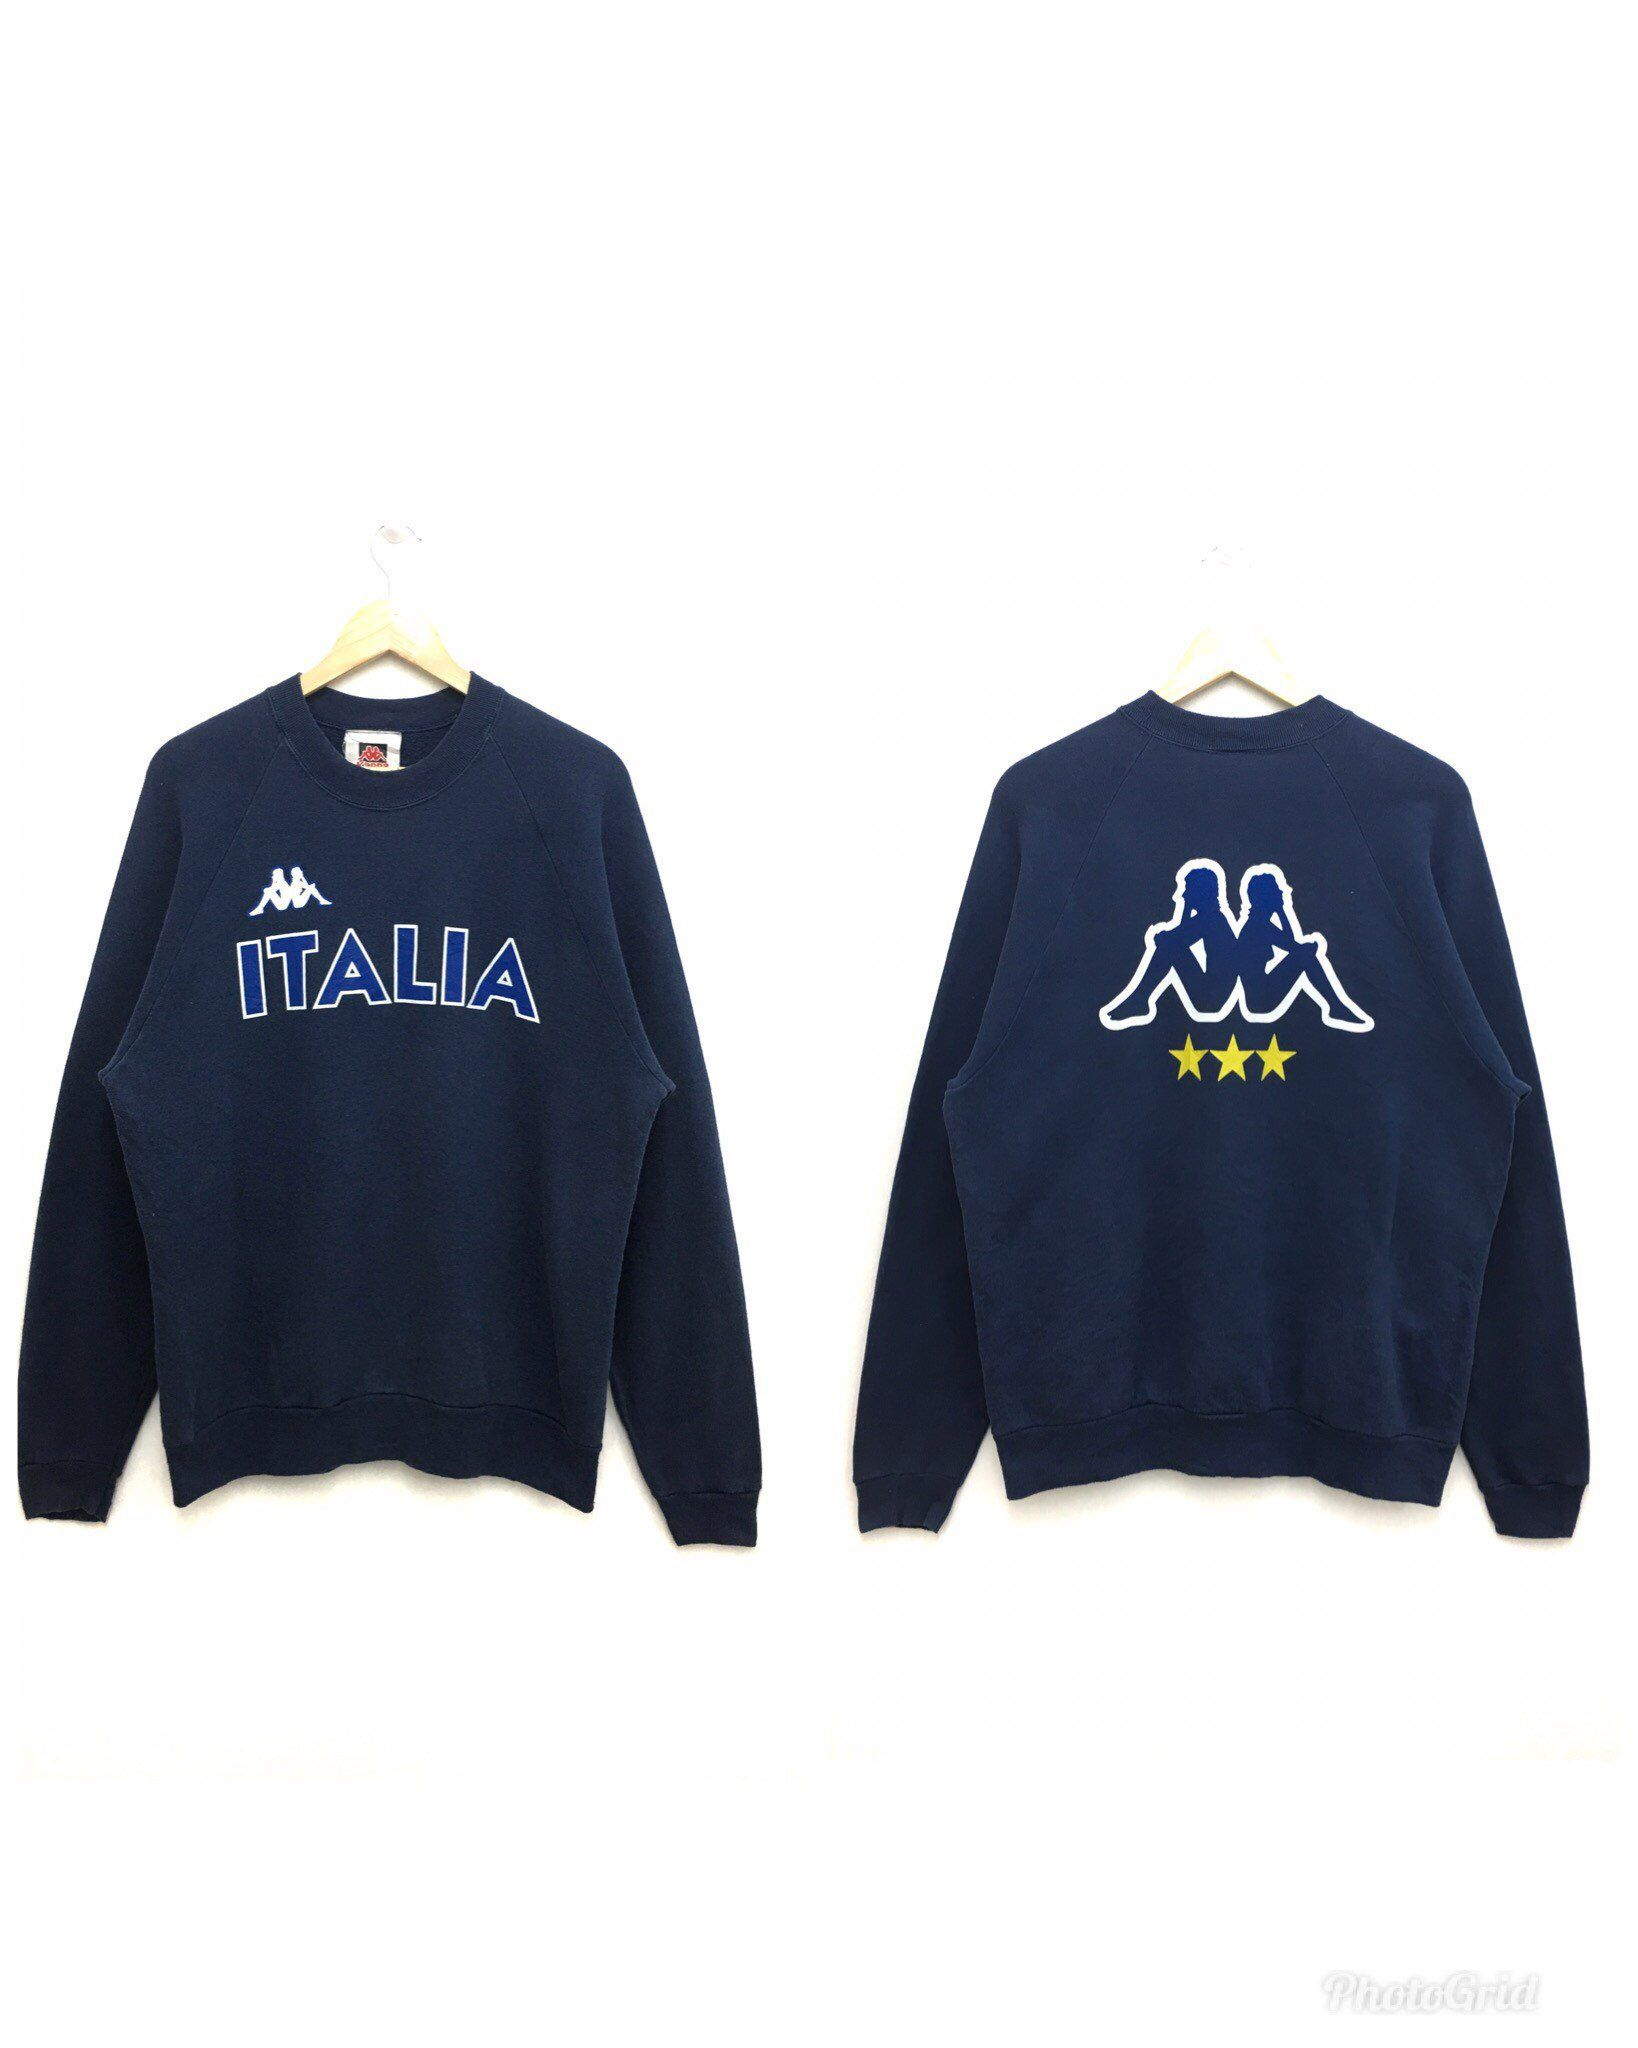 9f30e62de4 Excited to share this item from my #etsy shop: Rare!! Vintage 90's KAPPA  Sweatshirt Big Logo Navy Blue Color Large Size on Tag #clothing #hoodie  #men ...